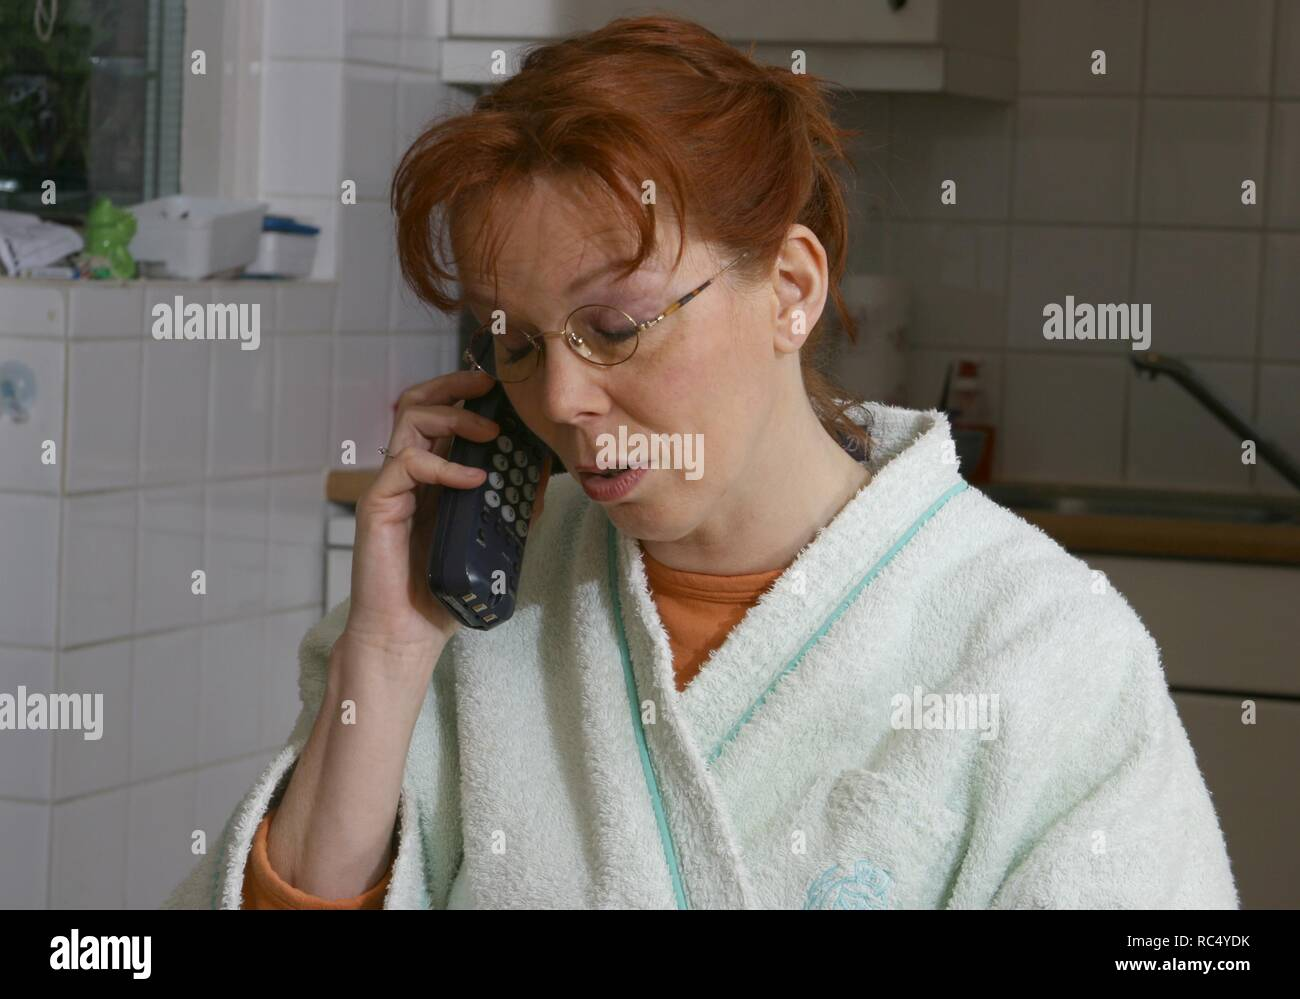 Woman in the 2000s at the breakfast table in morningcoat talking on the cordless telephone handset. - Stock Image